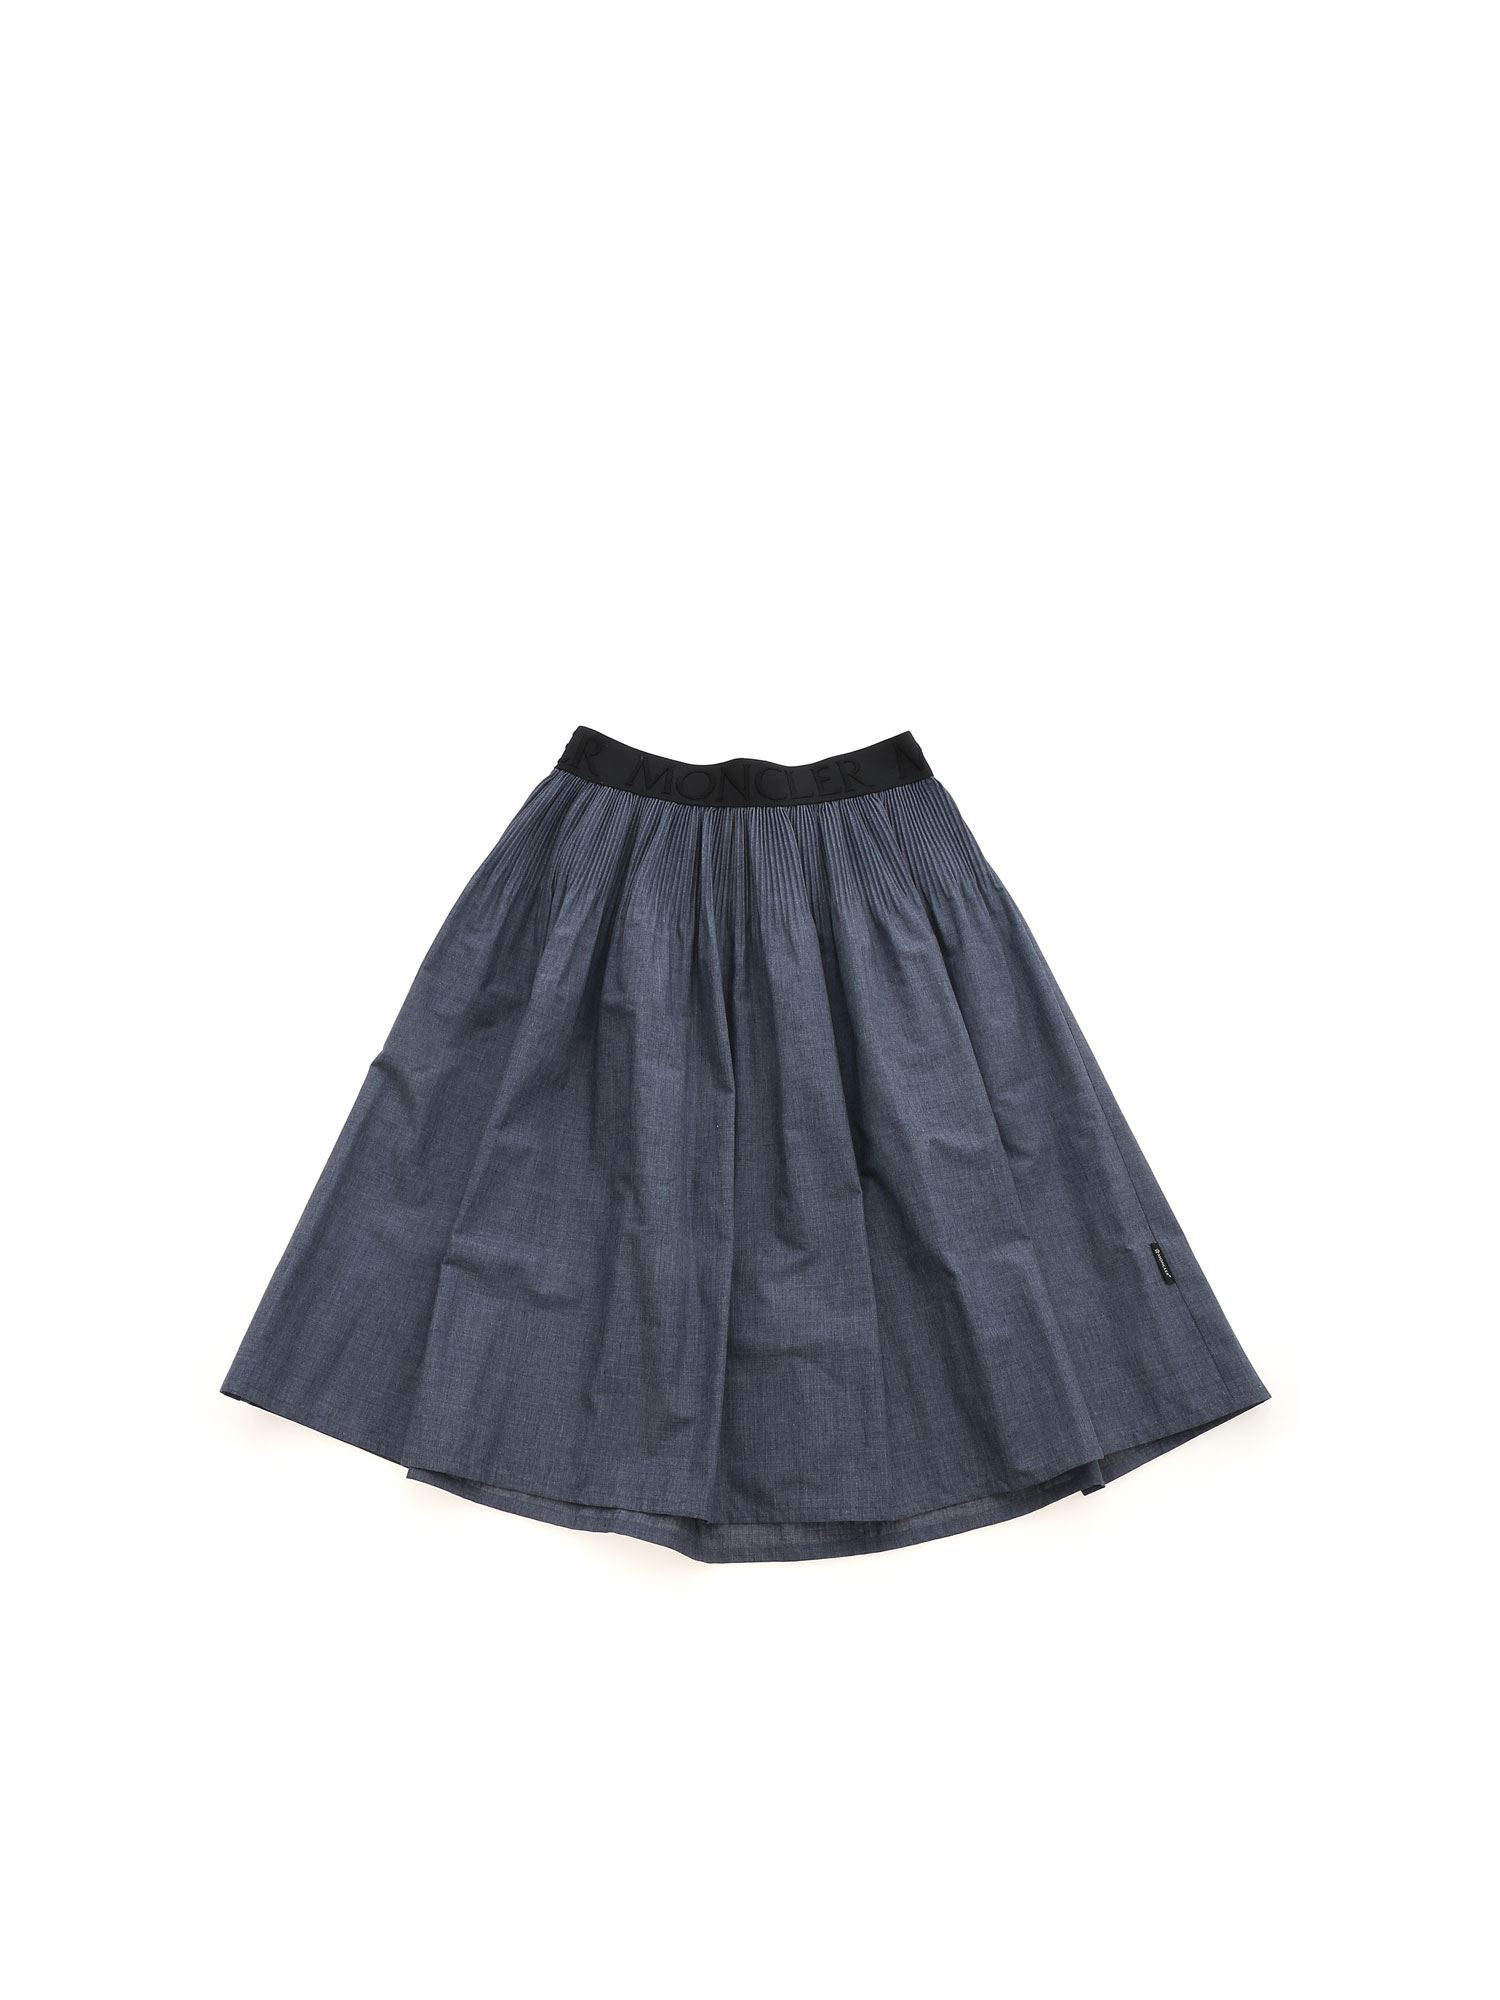 Moncler Jr CONTRASTING DETAILS SKIRT IN BLUE